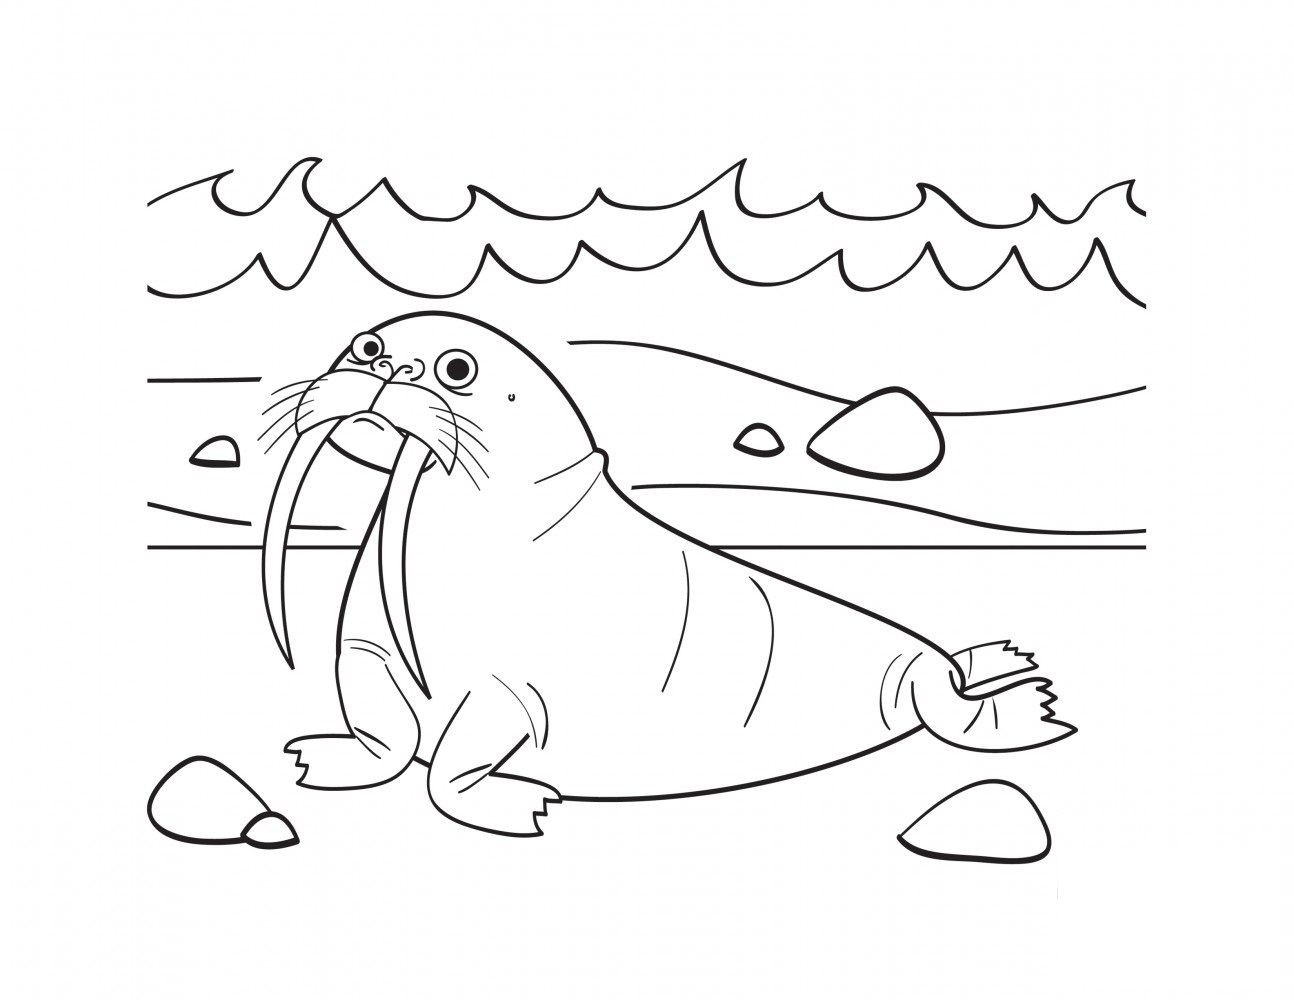 Free Walrus Coloring Pages With Printable Walrus Coloring Pages For Kids